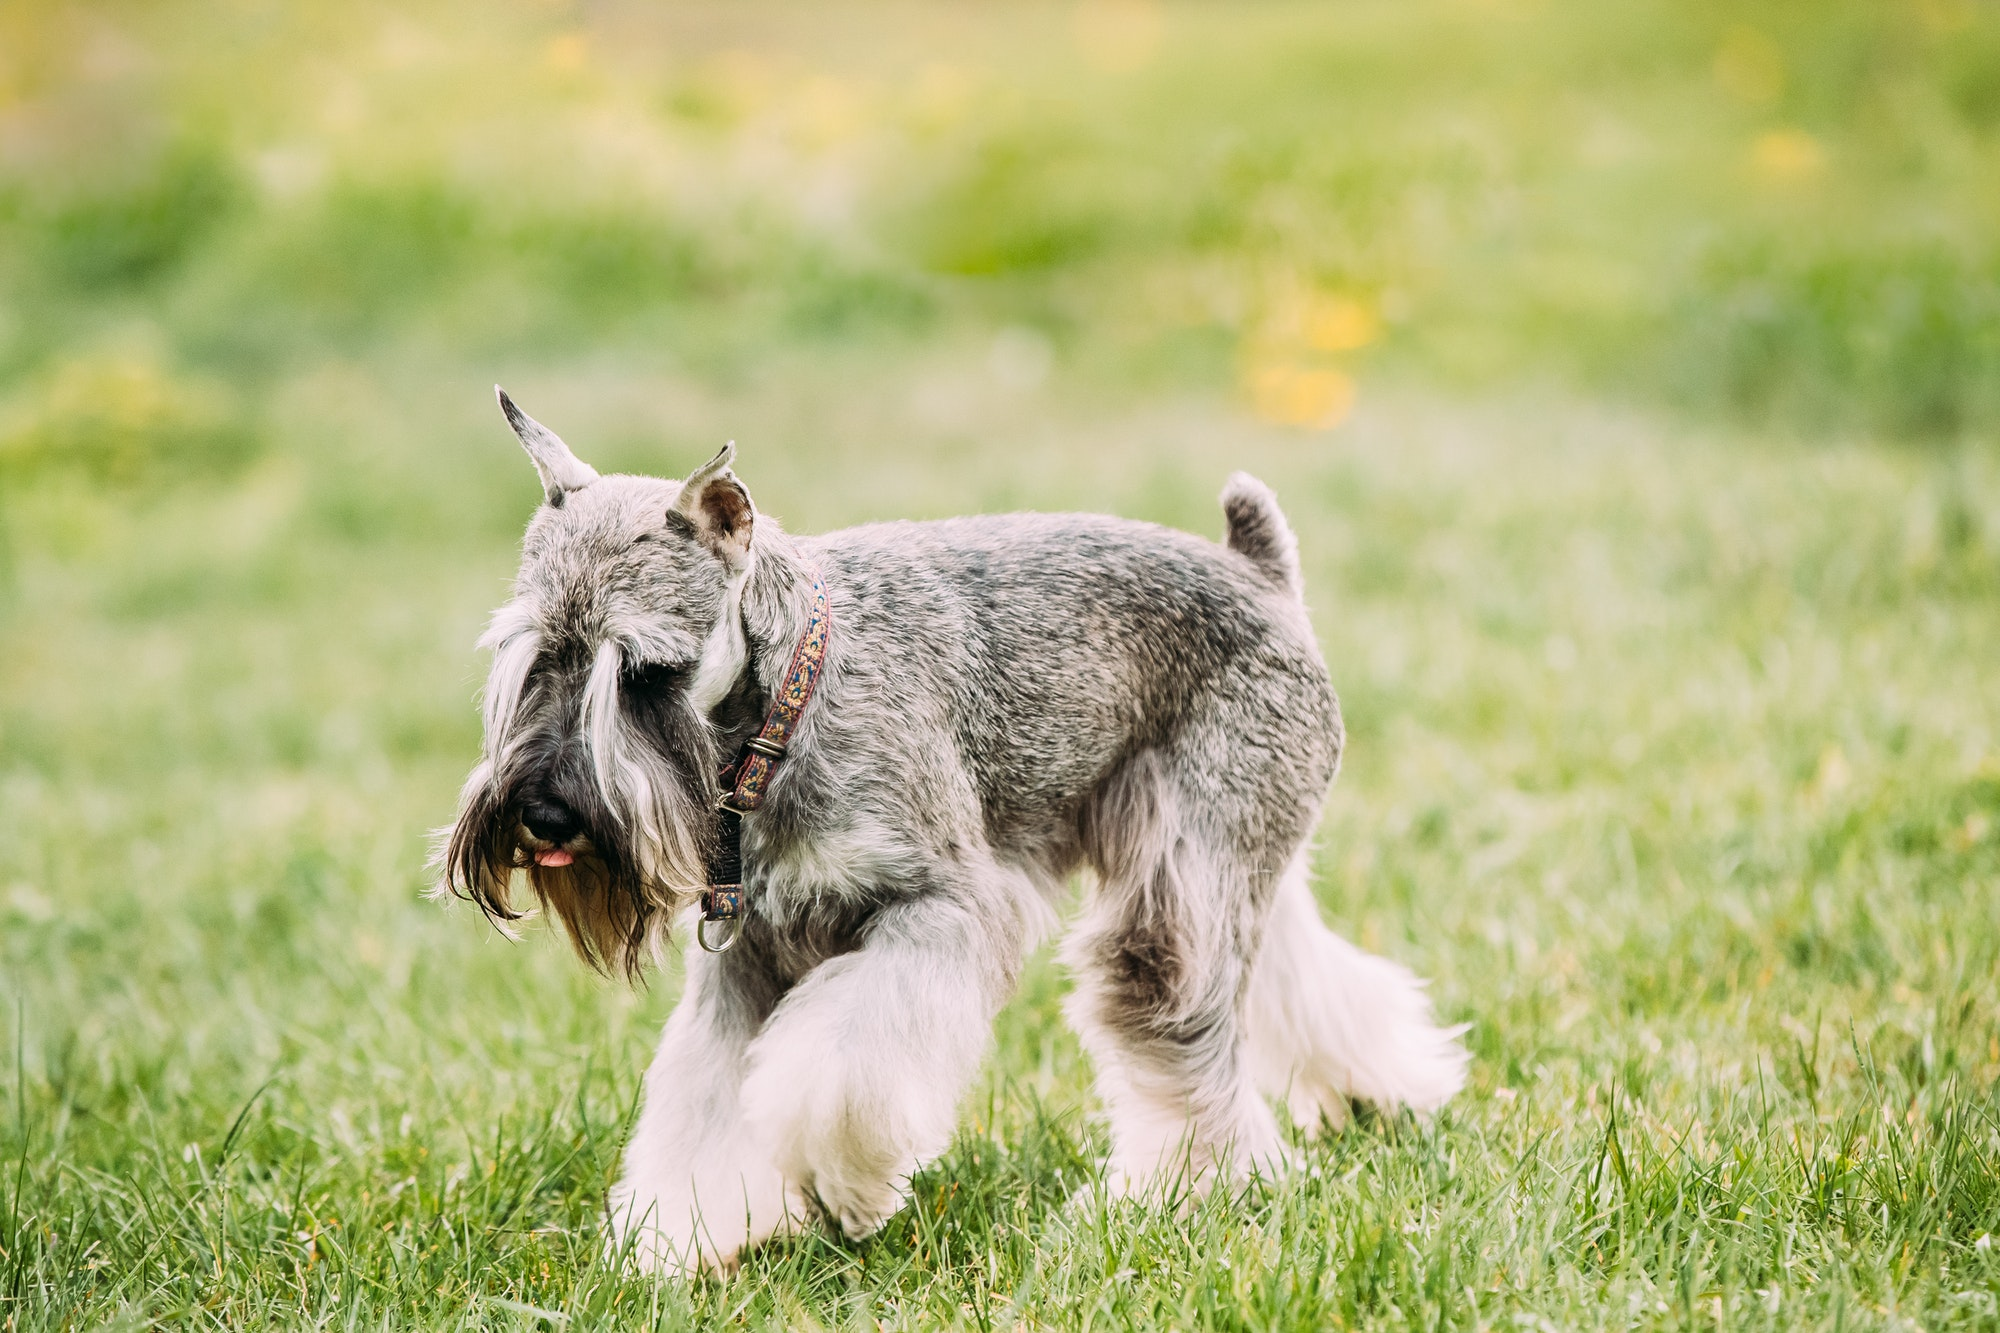 AKC Requirements For a Miniature Schnauzer